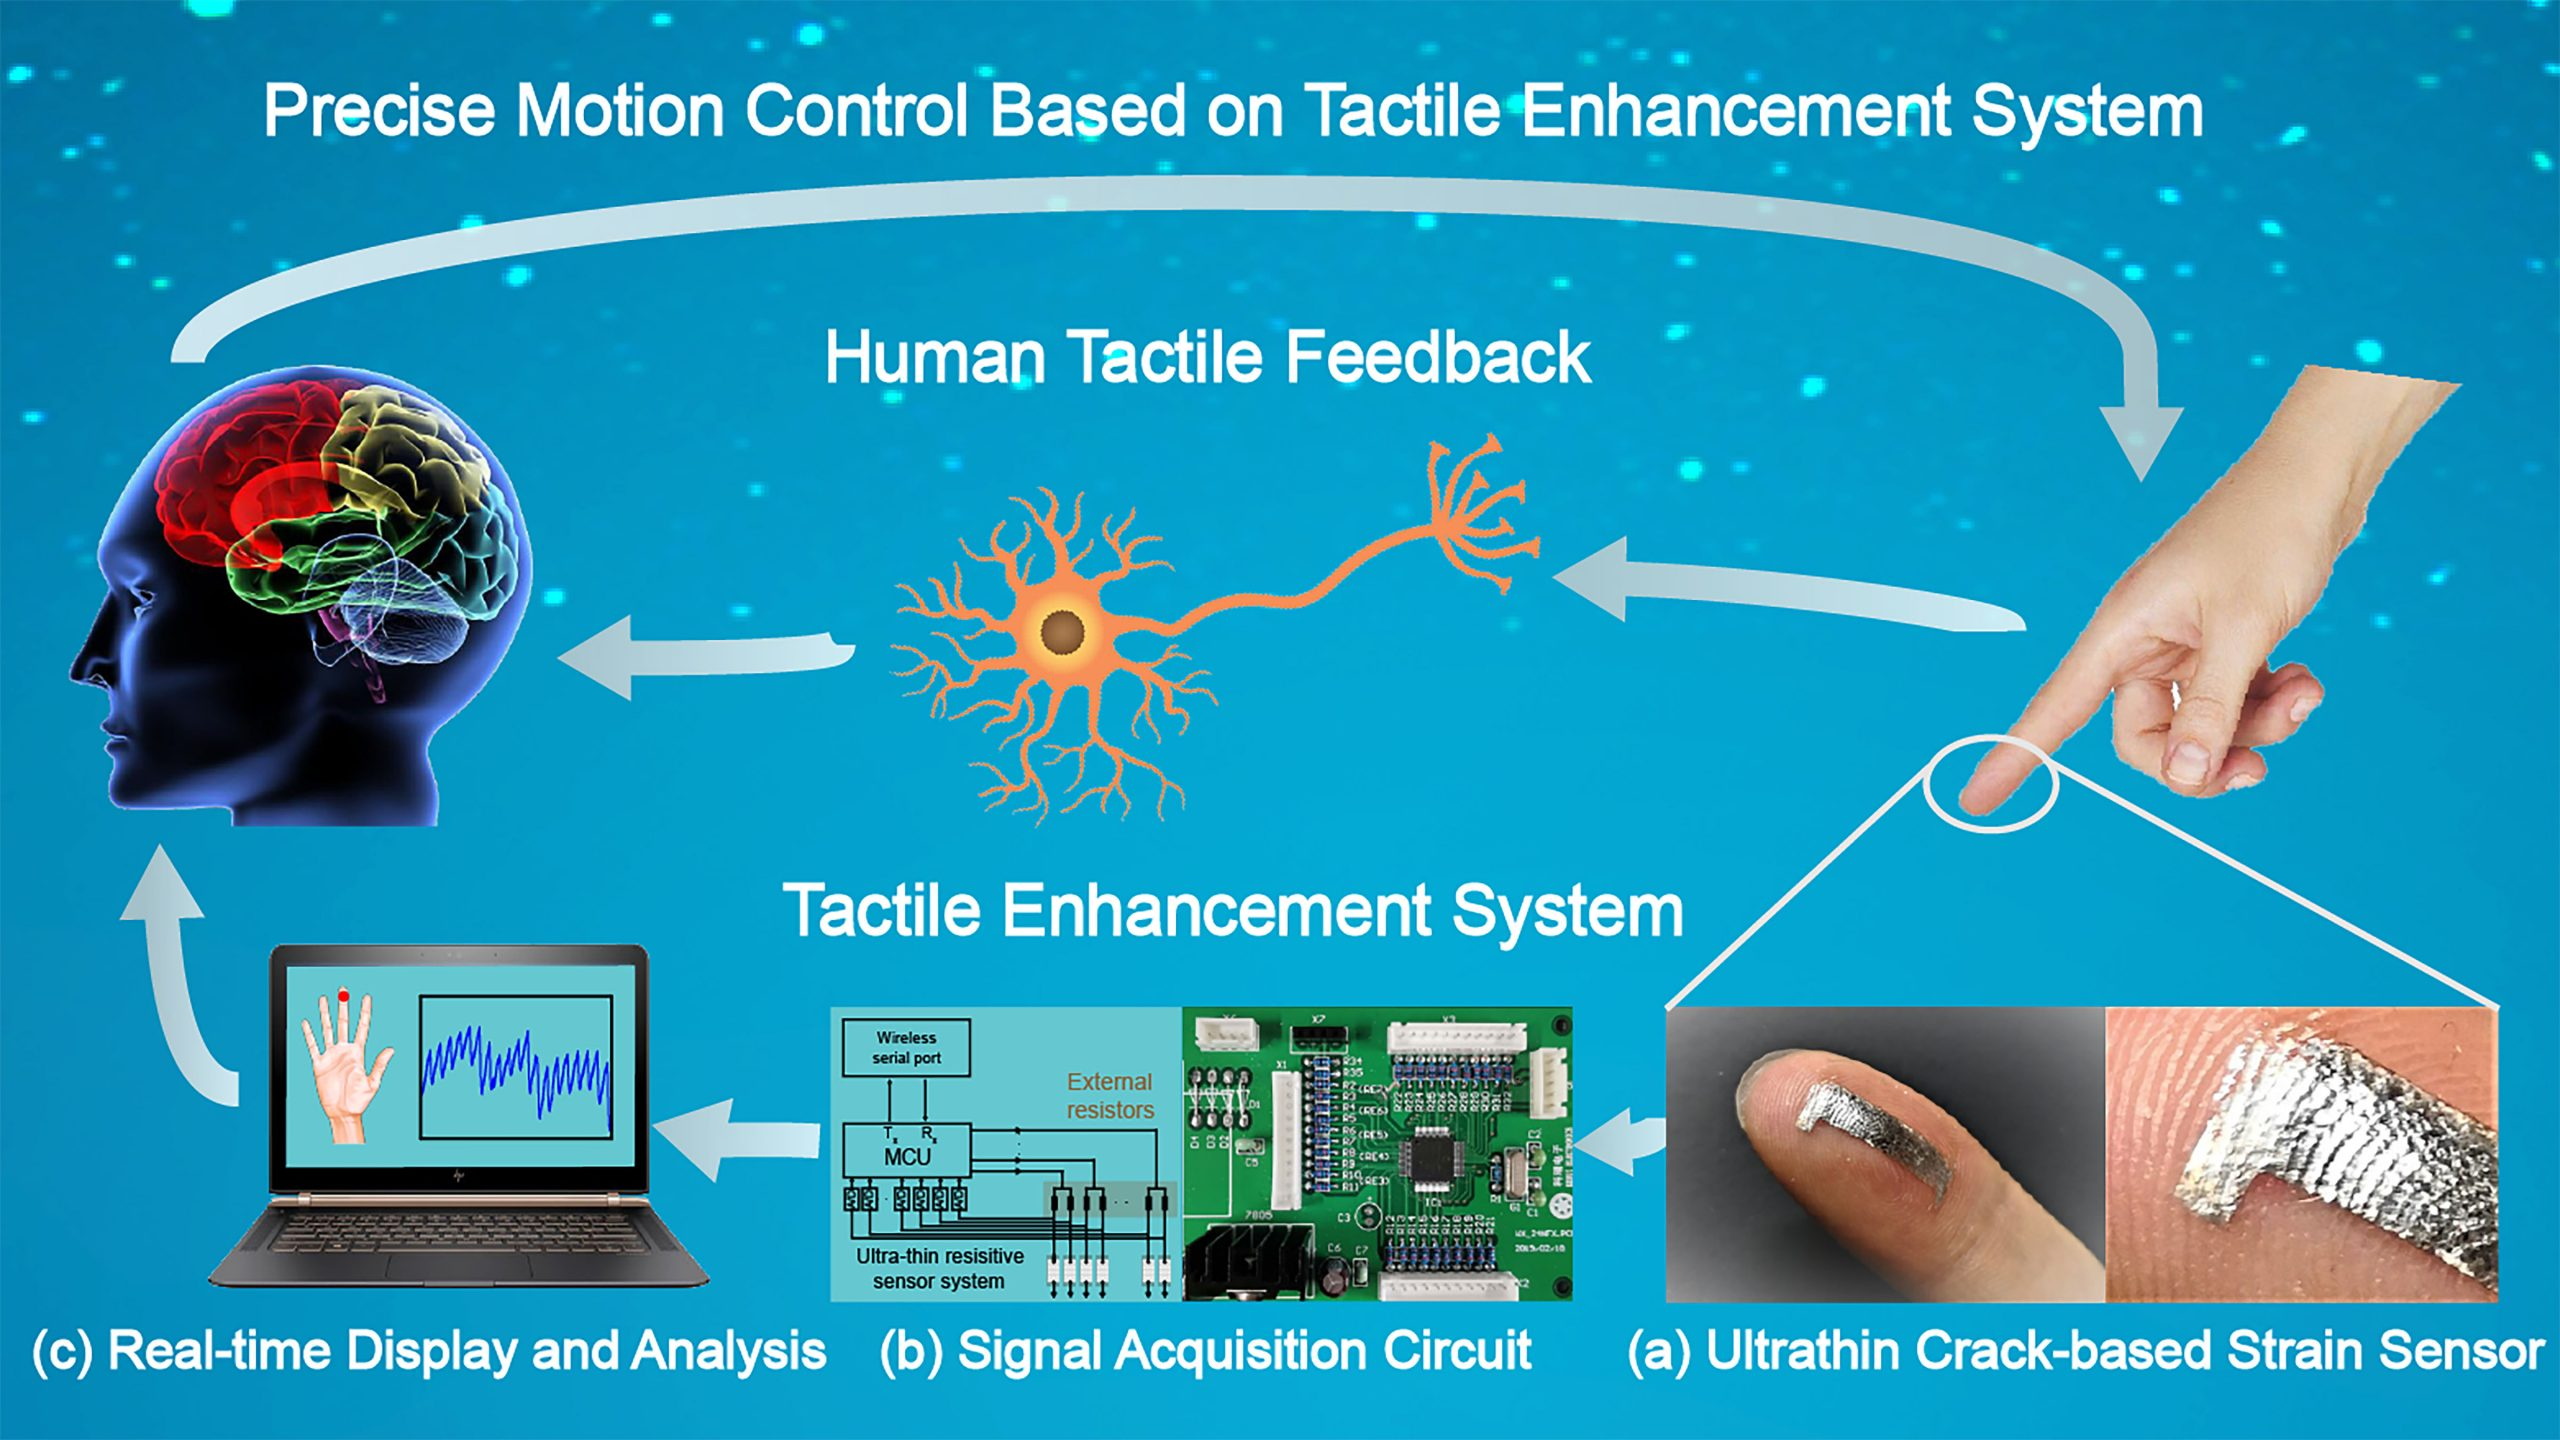 The visually aided tactile enhancement system, VATES, applied for precise motion control. The ultrathin highly sensitive crack-based sensor, signal acquisition circuit and real-time display system are used to realize the induction of tiny deformations. Ultrathin sensors exceed human skin sensitivity and do not disturb the human skin's tactile sensation. A real-time display can be used as a supplement to assist a person's tactile sensation. CREDIT: Rongrong Bao